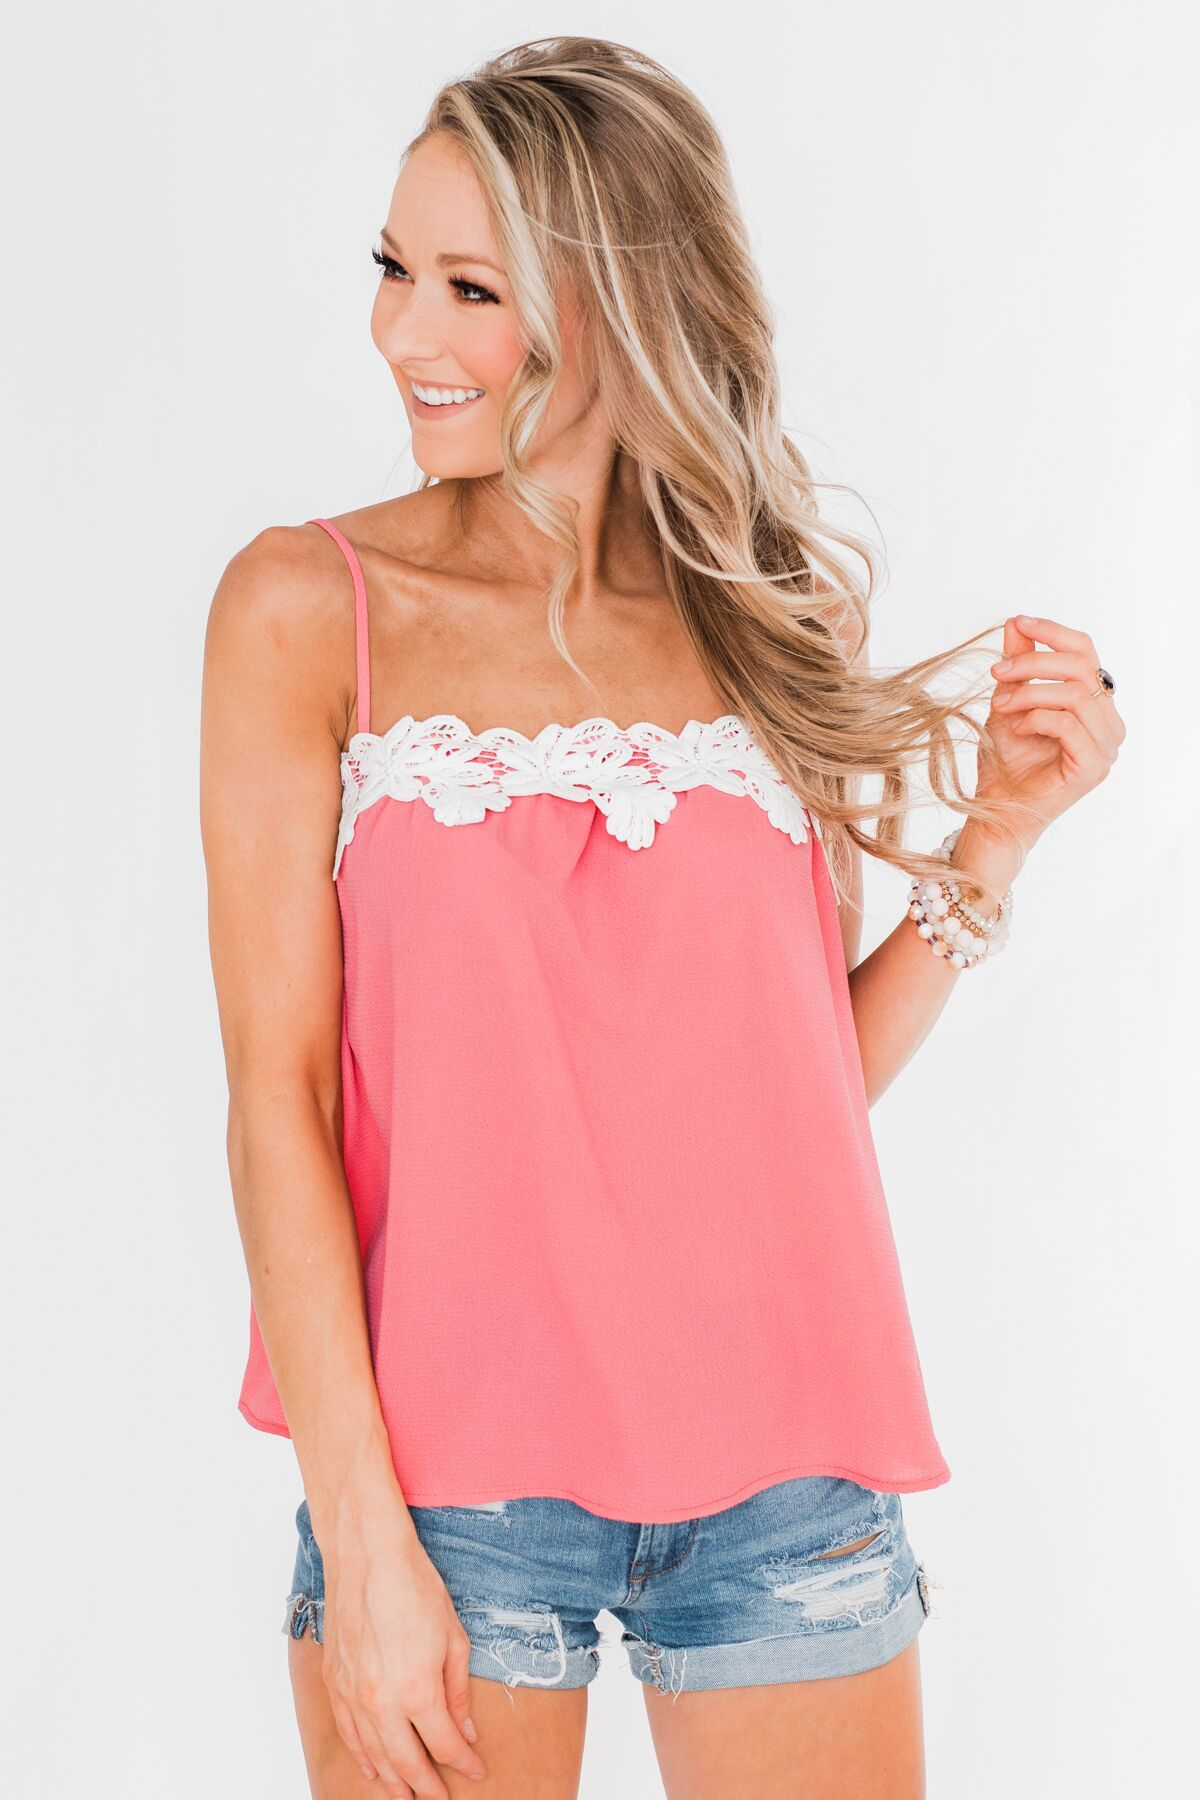 I Hold On Spaghetti Strap Tank Top- Coral